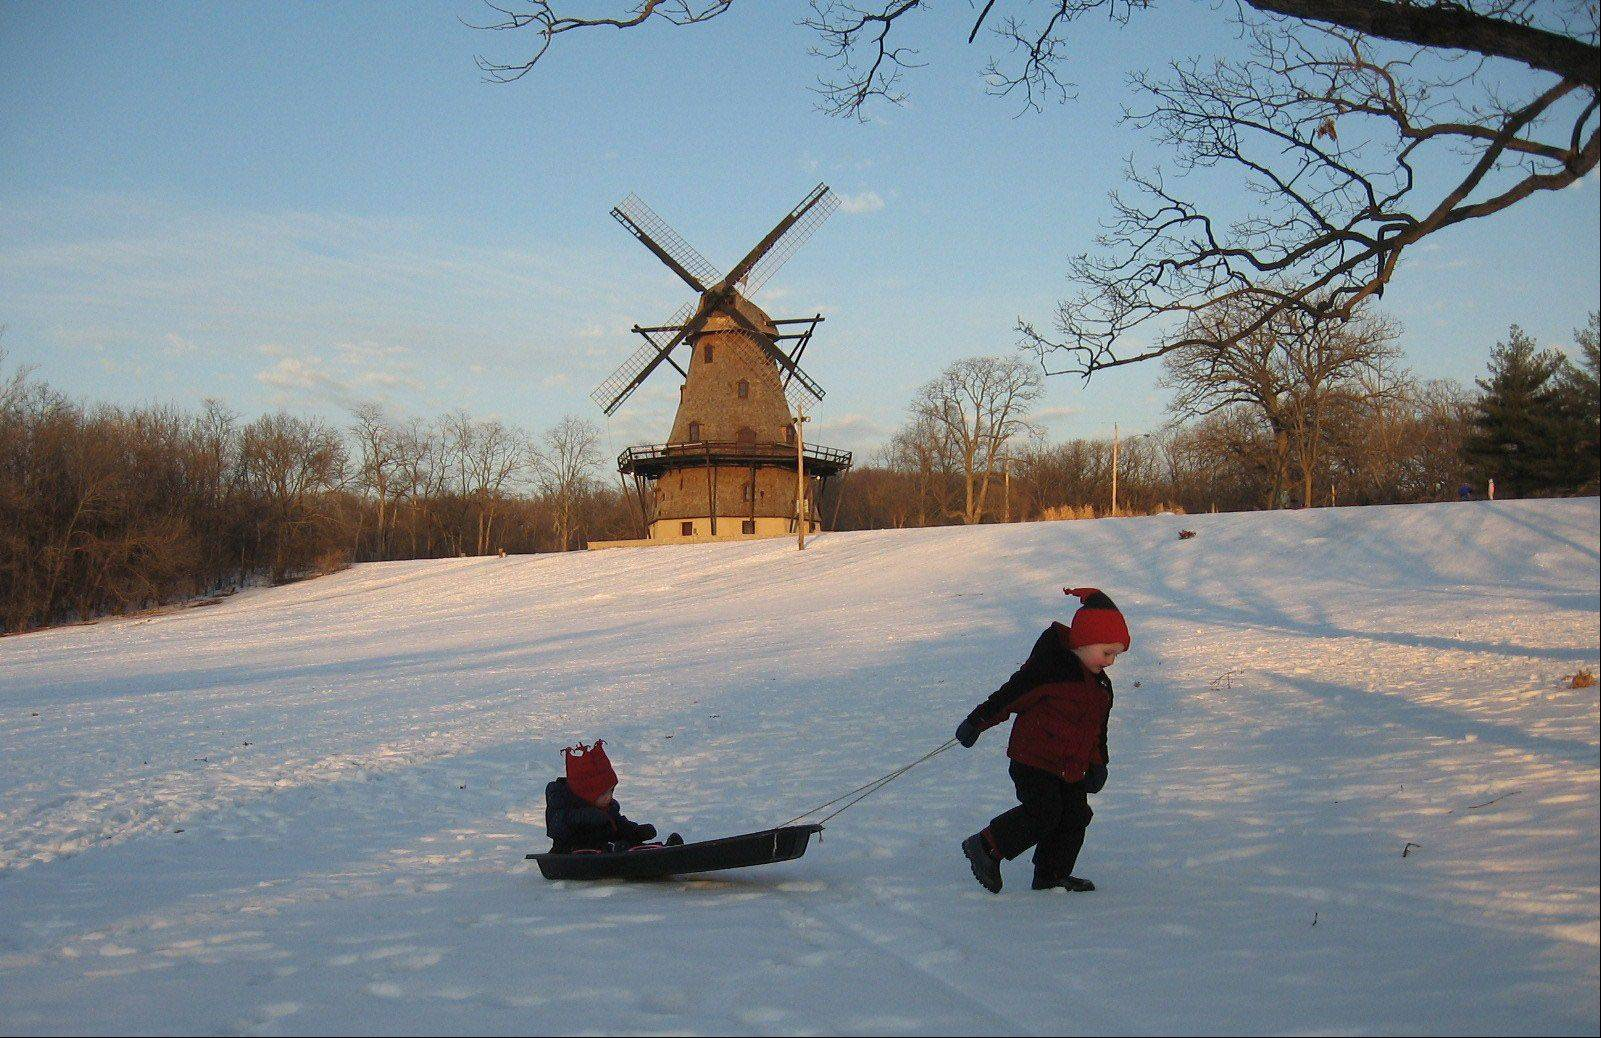 Photos of landmarks or historic sites are often more interesting if there are people in the picture to help give it scale. This one from Katie O'Connor of Batavia, of her sons sledding at the Fabyan Windmill, was the monthly winner in January 2010.